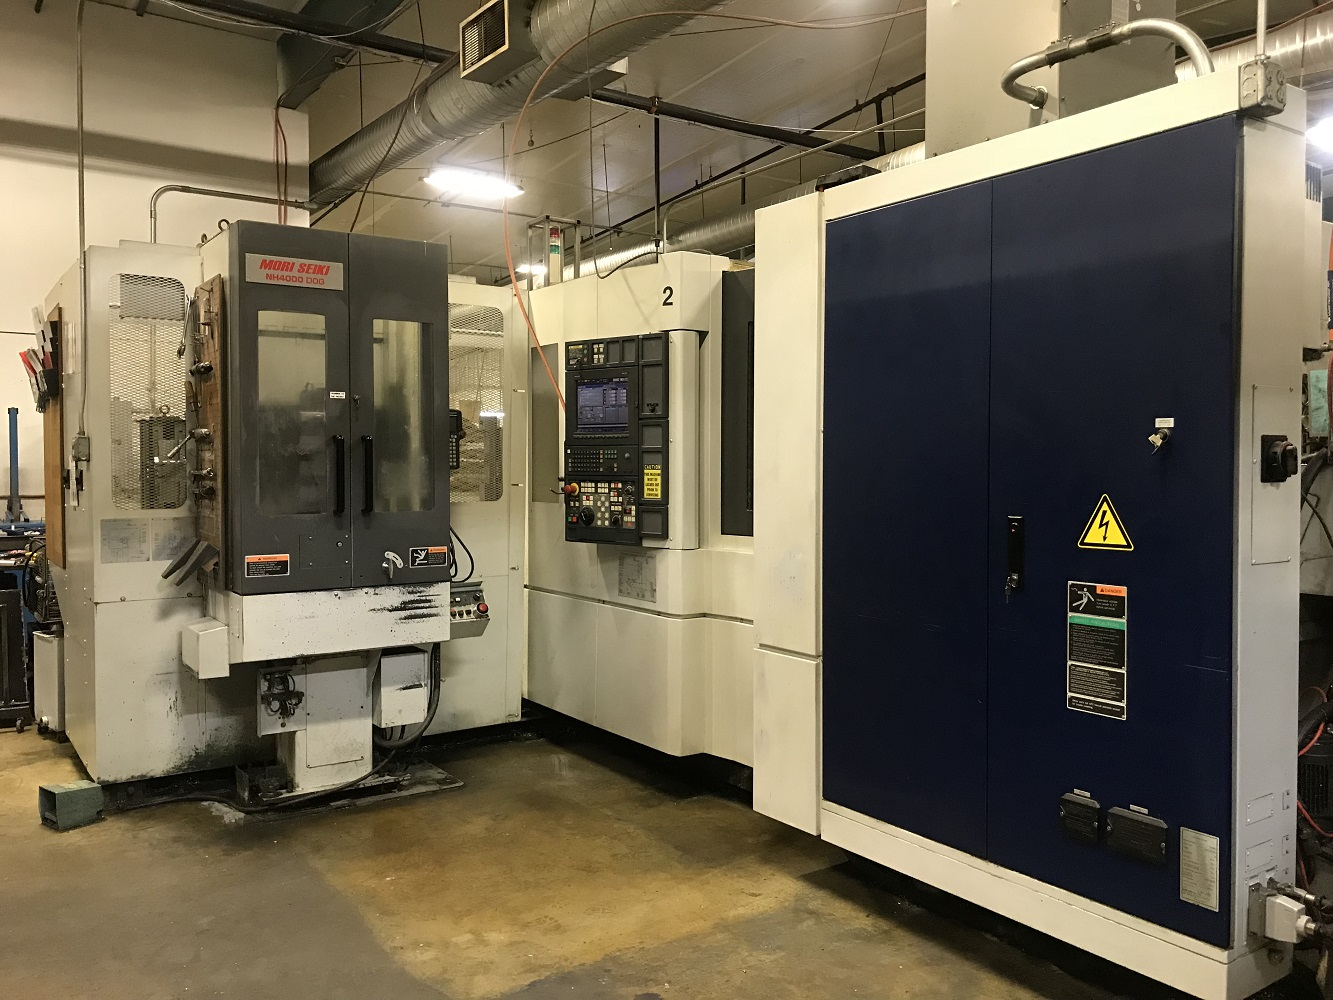 2004 Mori Seiki NH-4000/40 with 6-Station CPP